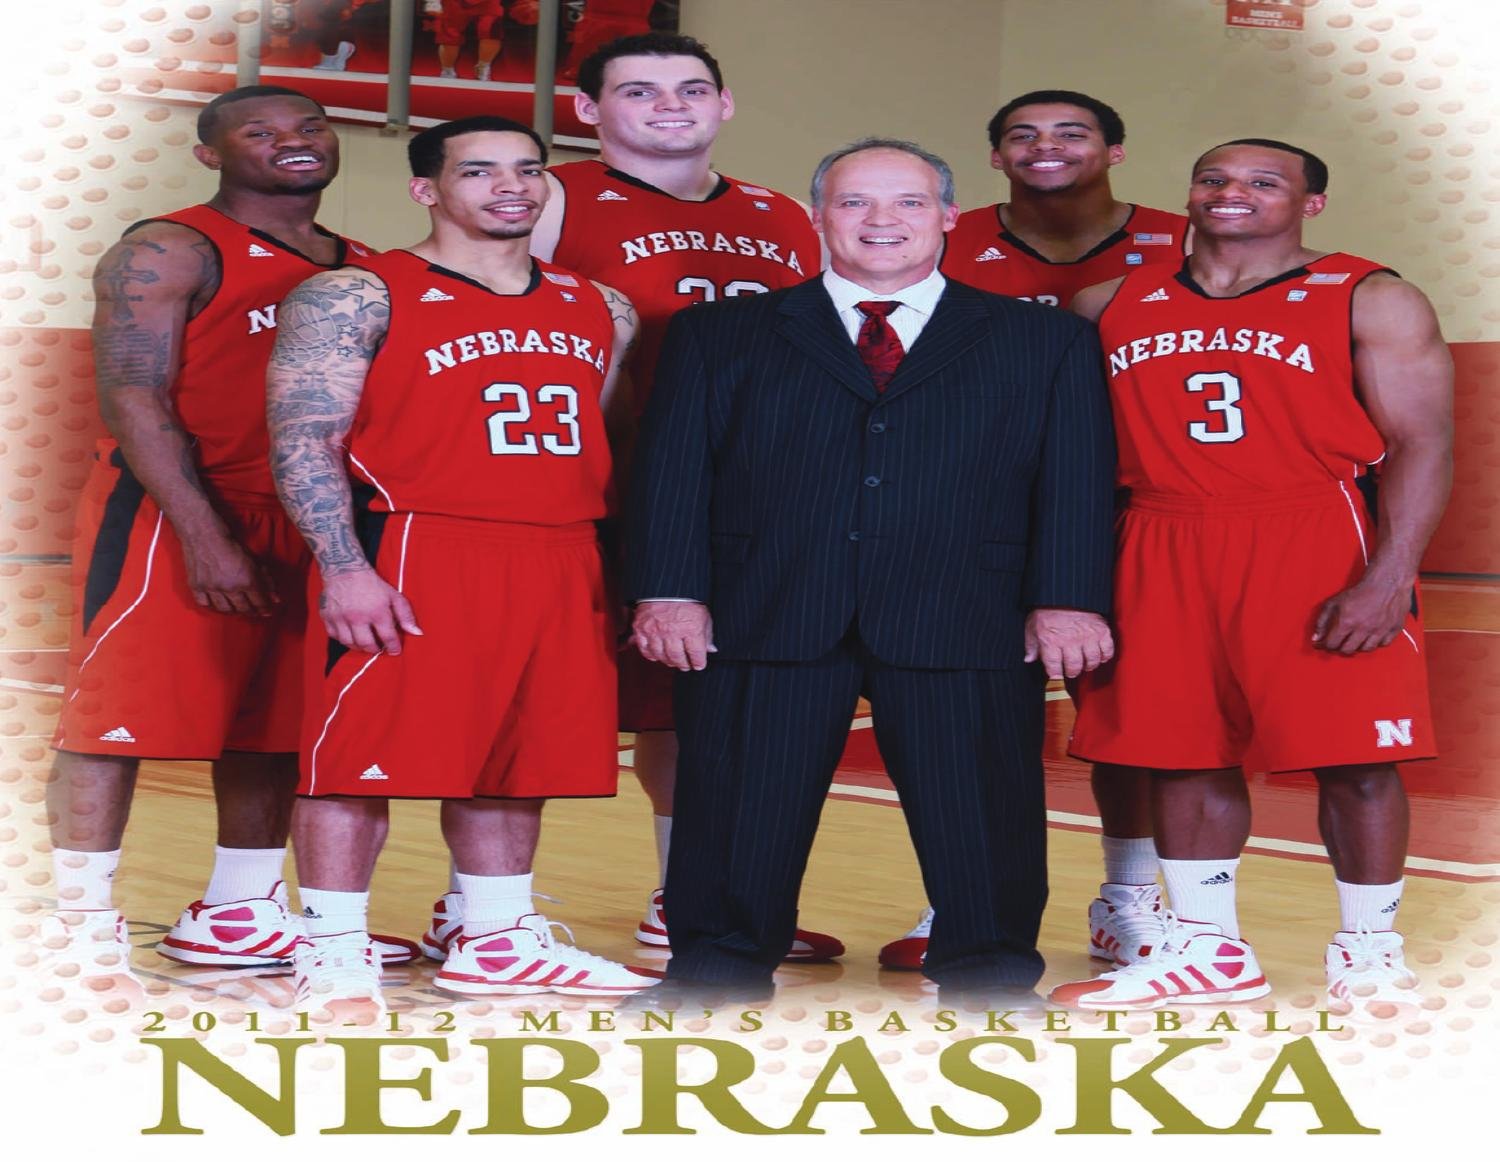 2011-12 Nebraska Basketball Media Guide by Shamus McKnight - issuu 1275c8ee6